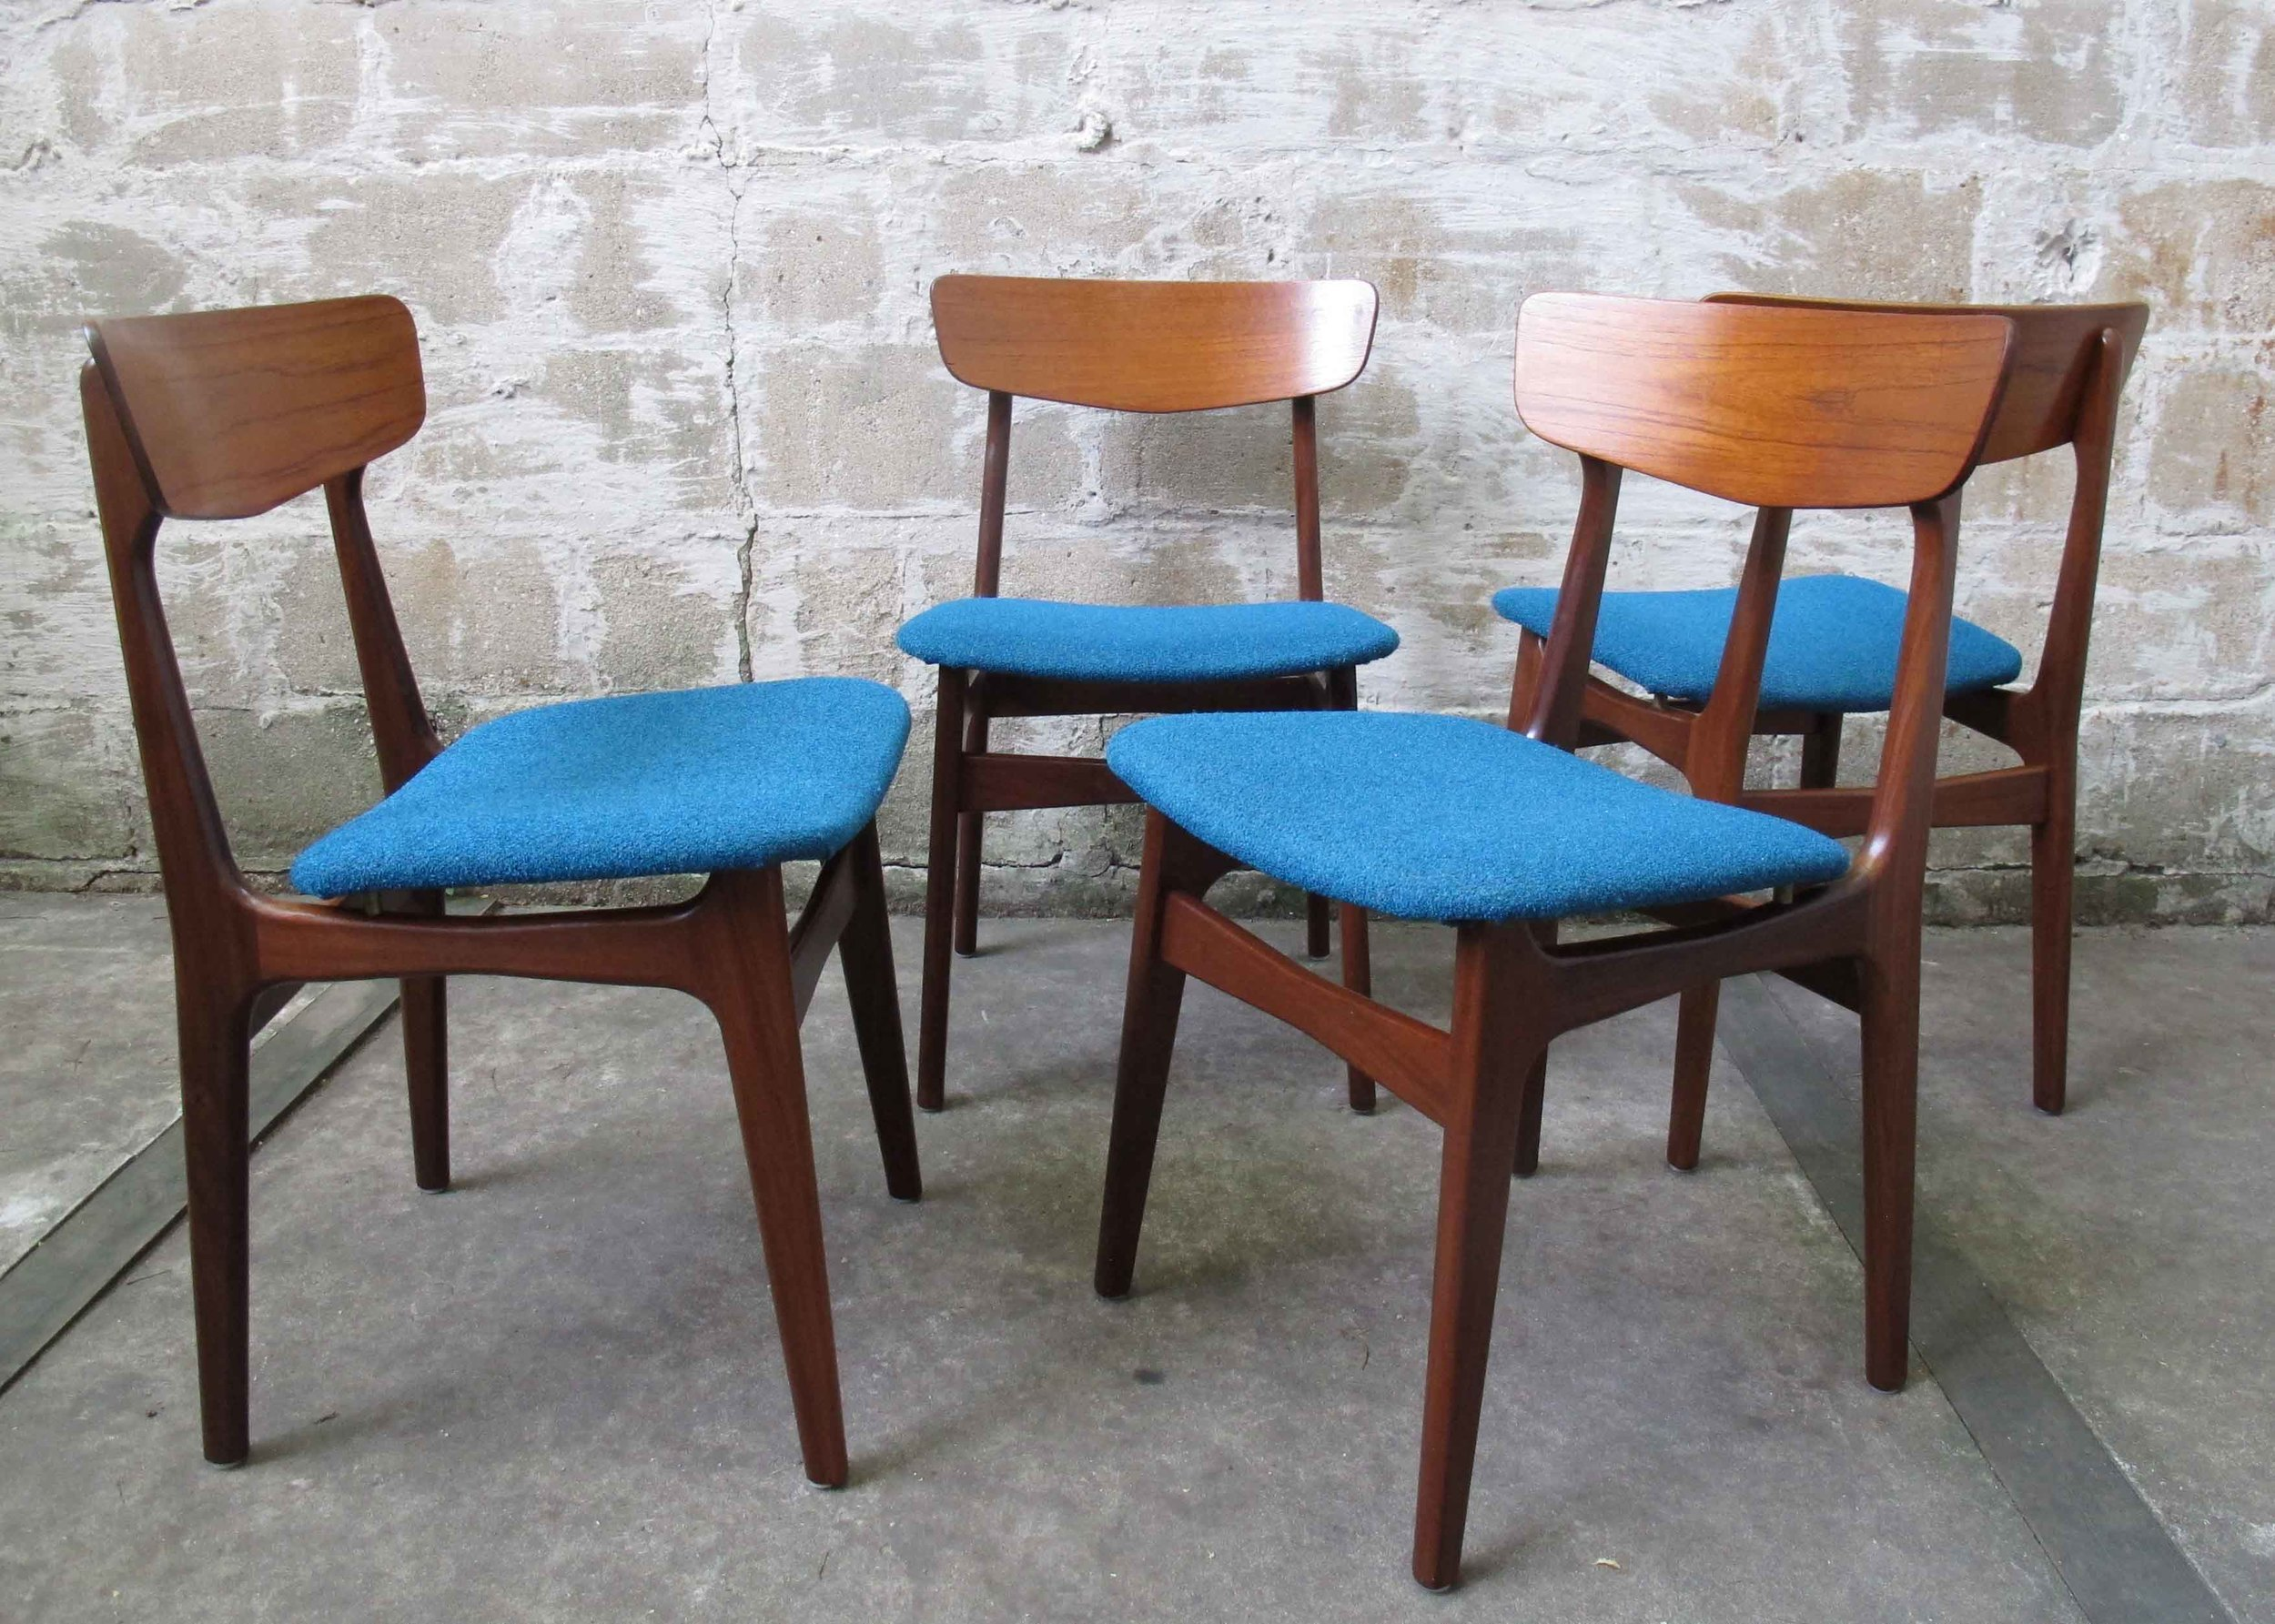 FOUR DANISH MODERN SCULPTED TEAK & WALNUT DINING CHAIRS WITH BRASS FITTINGS